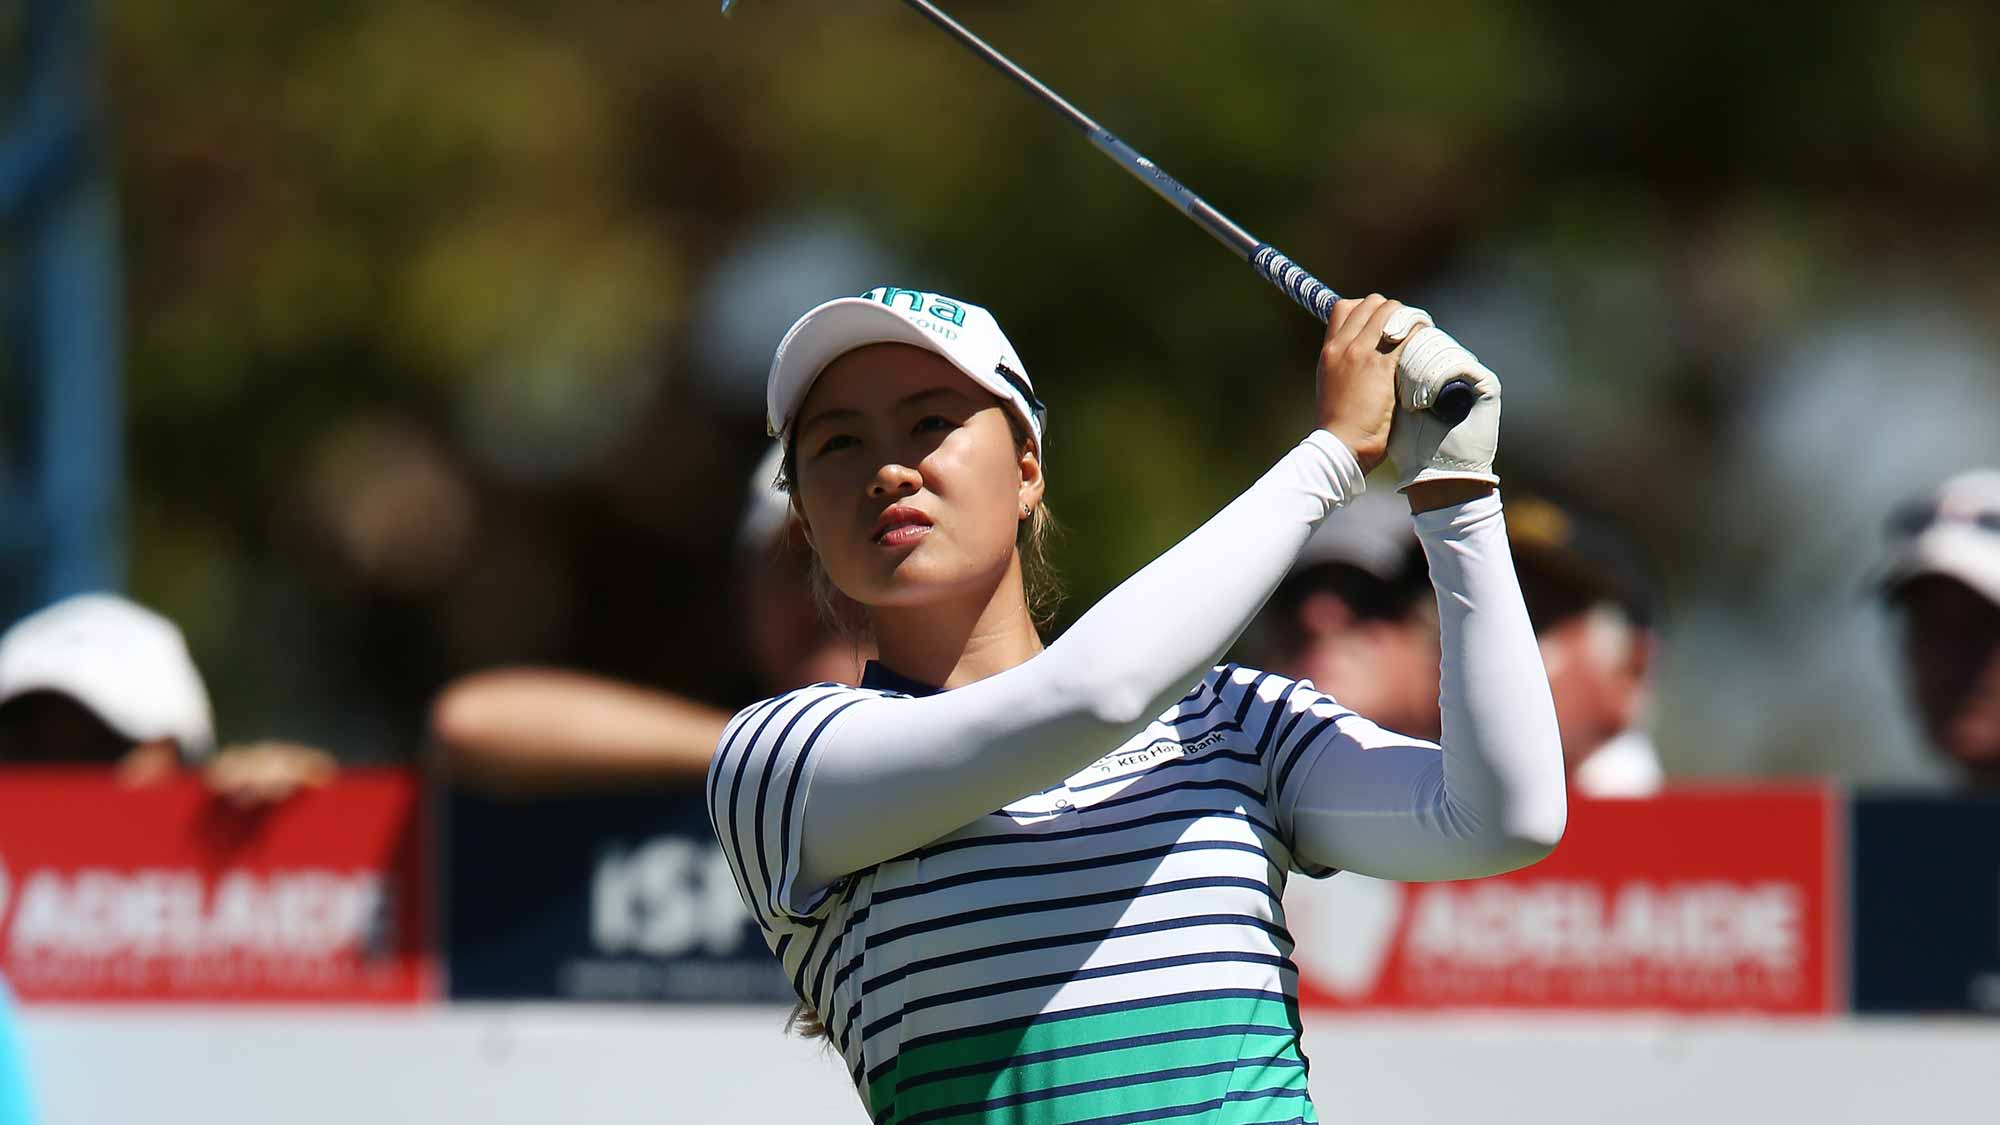 Minjee Lee of Australia competes during day one of the ISPS Handa Women's Australian Open